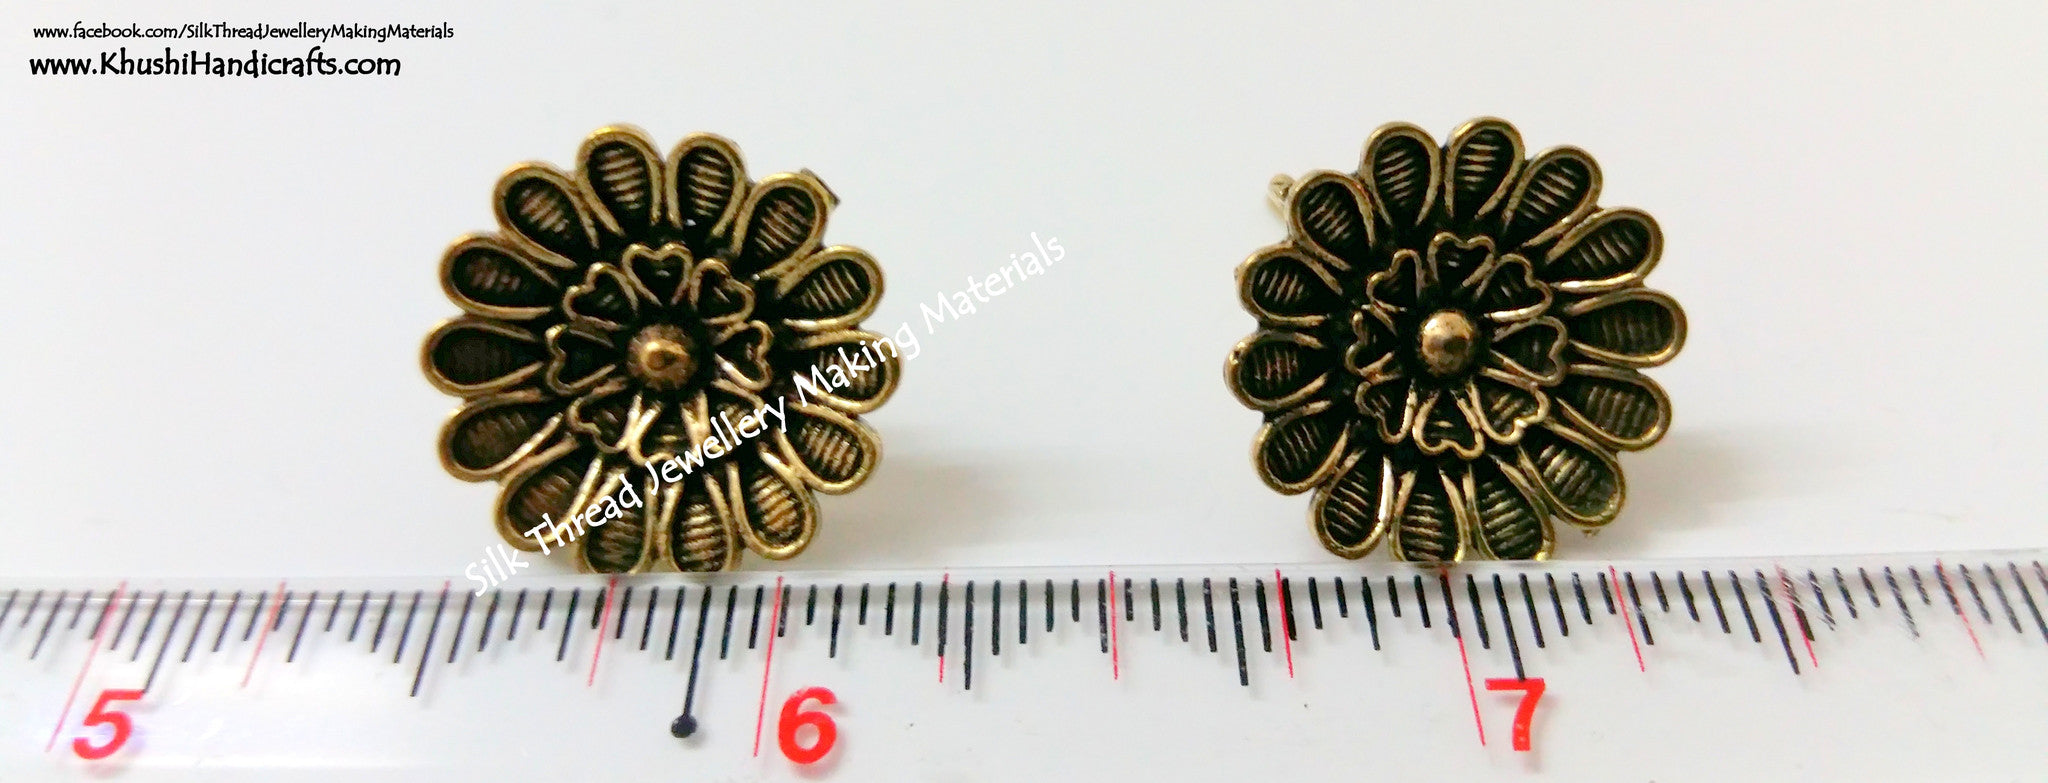 Antique Gold Flower Studs 2 - Khushi Handmade Jewellery